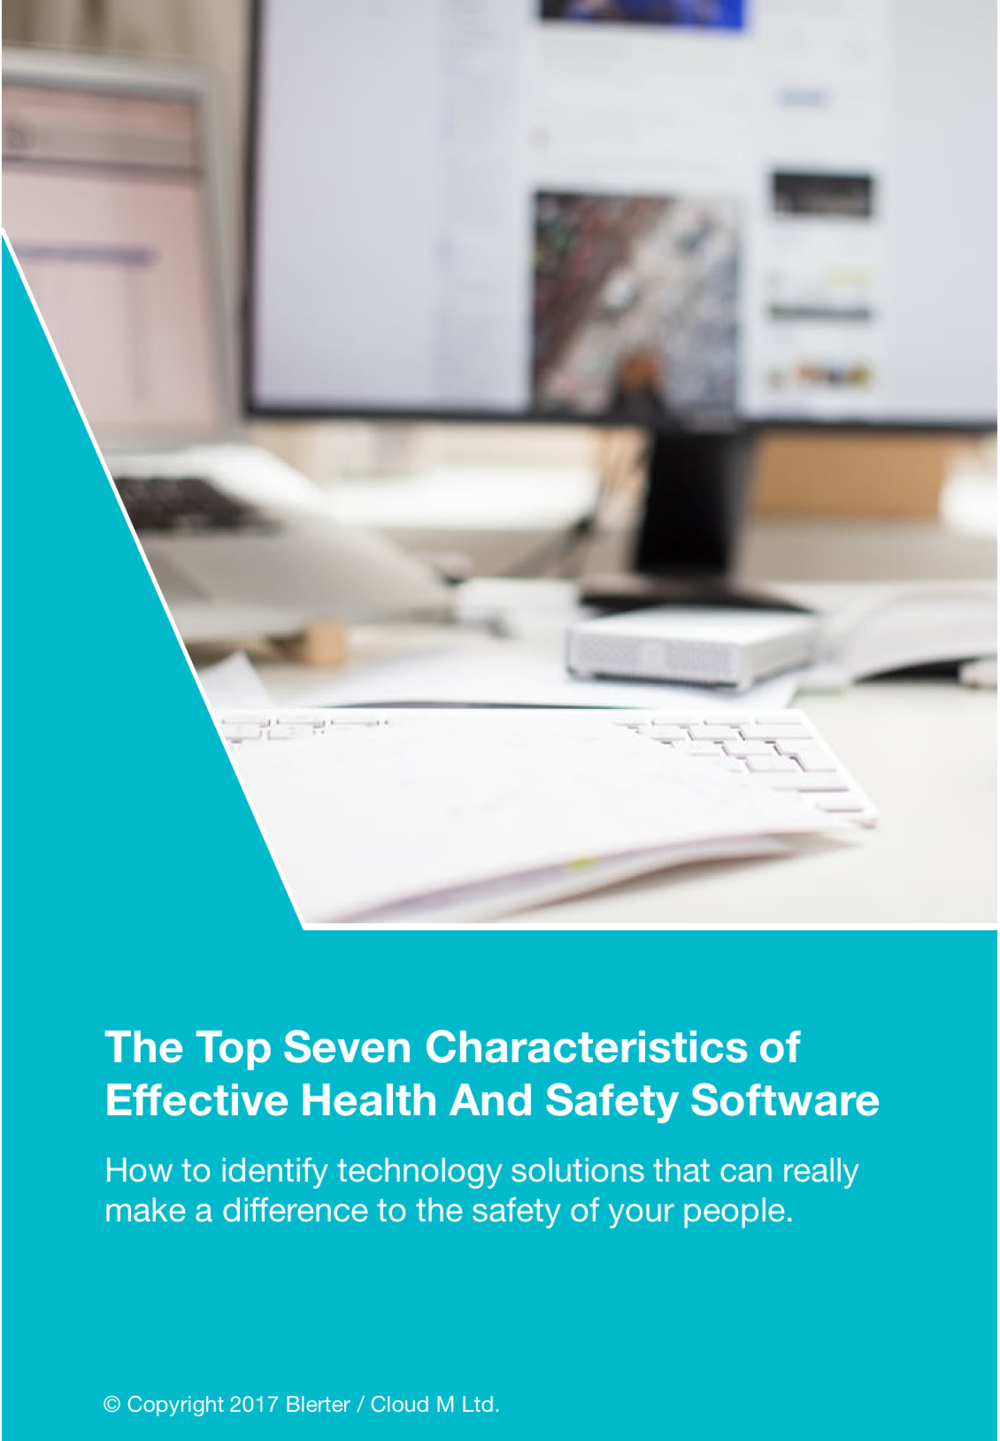 White Paper: Characteristics of Effective Health and Safety Software